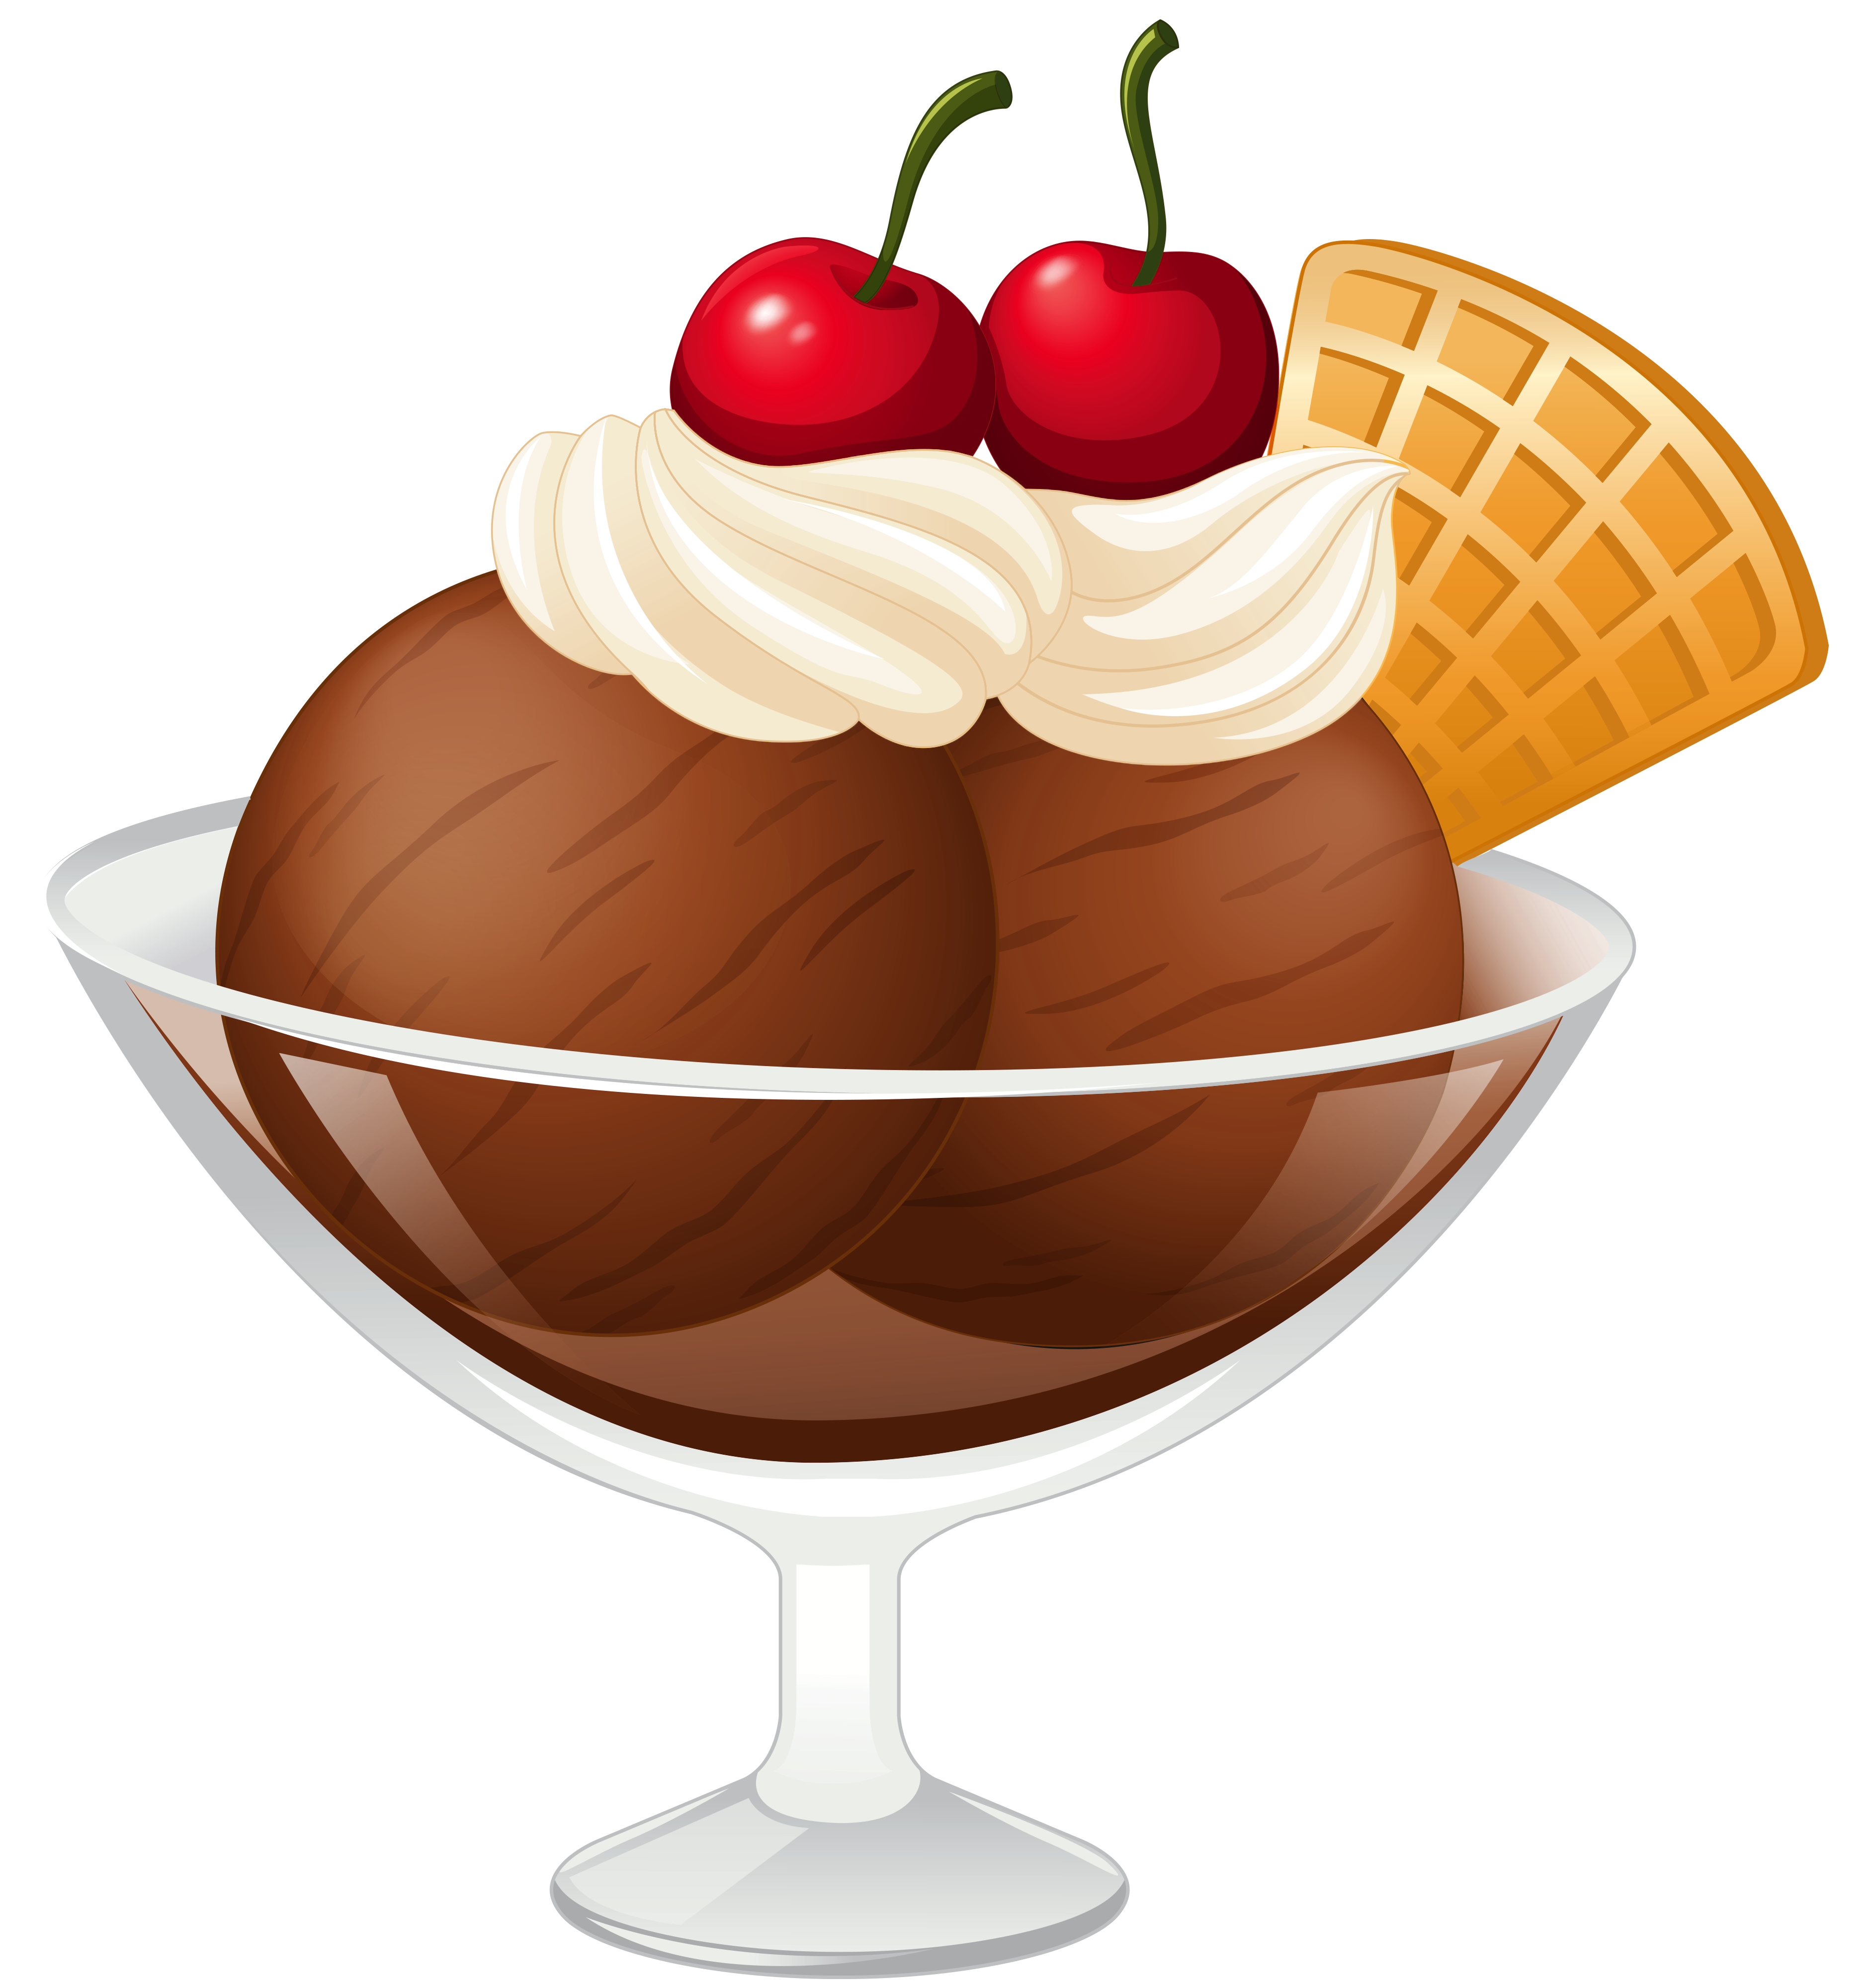 Chocolate_Ice_Cream_Sundae_Transparent_Picture.png?m=1422196971.